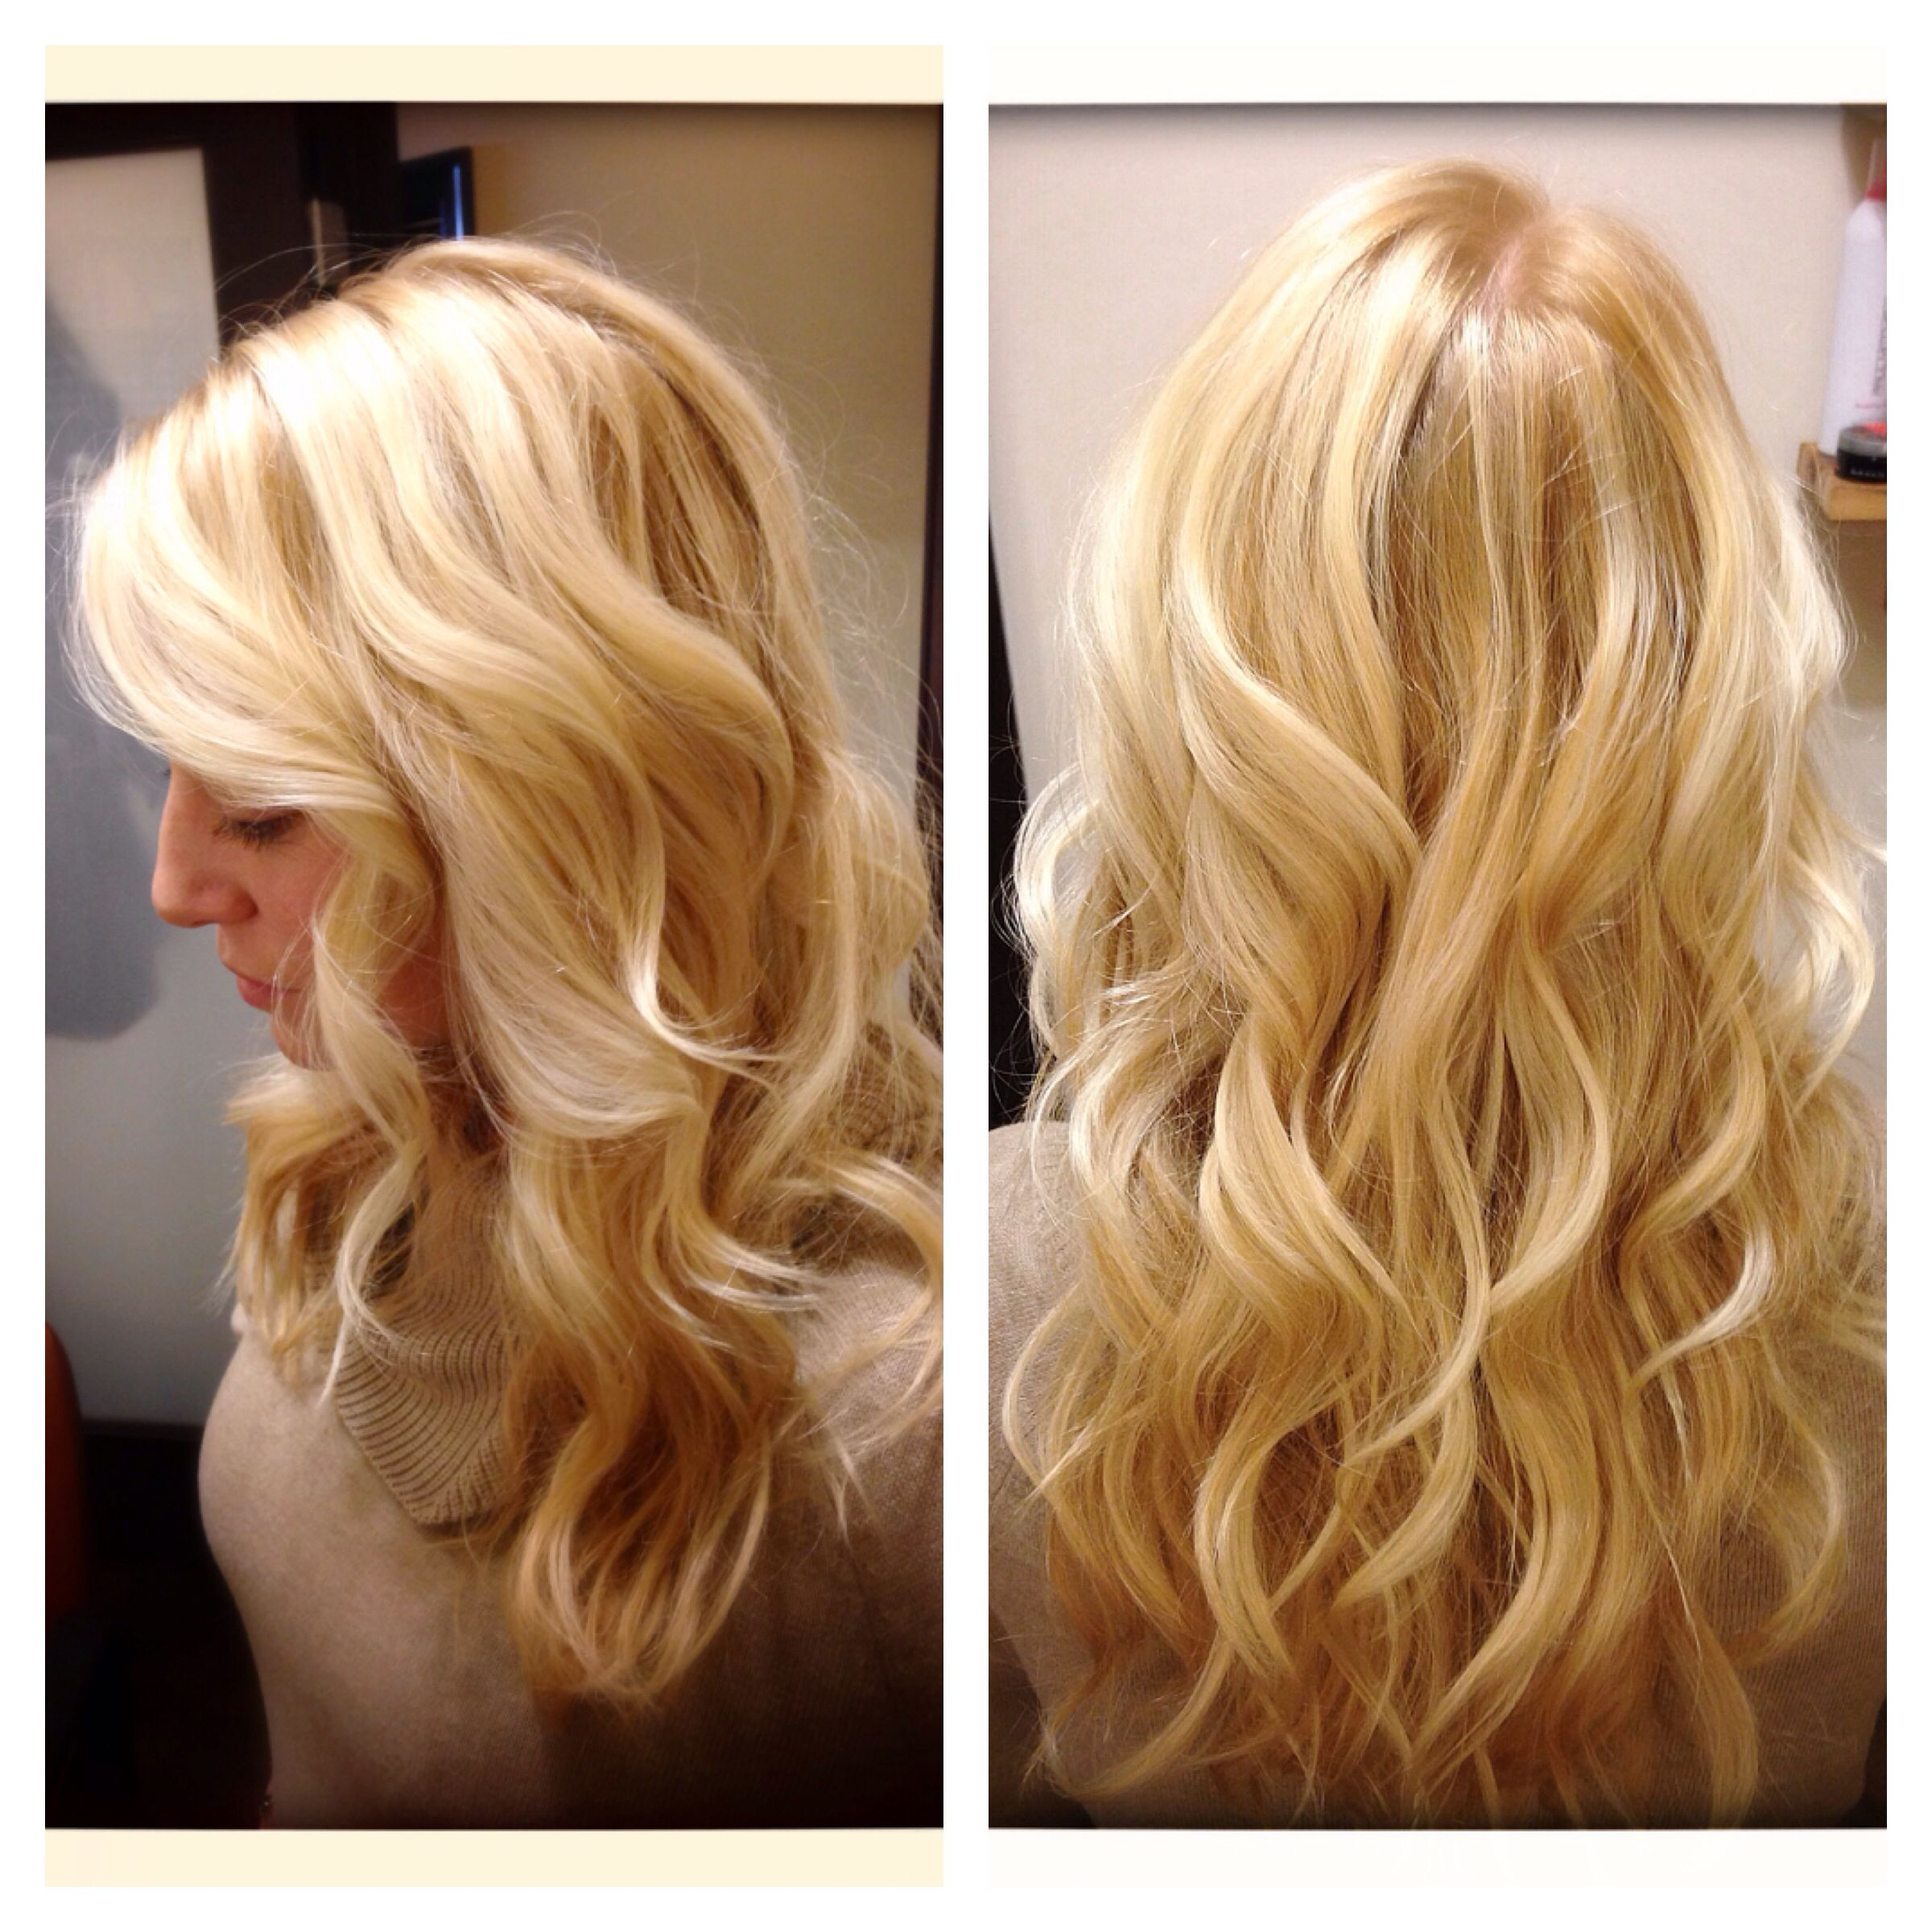 Curls Done With The Paul Mitchell Neuro Unclipped Curling Wand Hair Hair Beauty Pretty Hairstyles